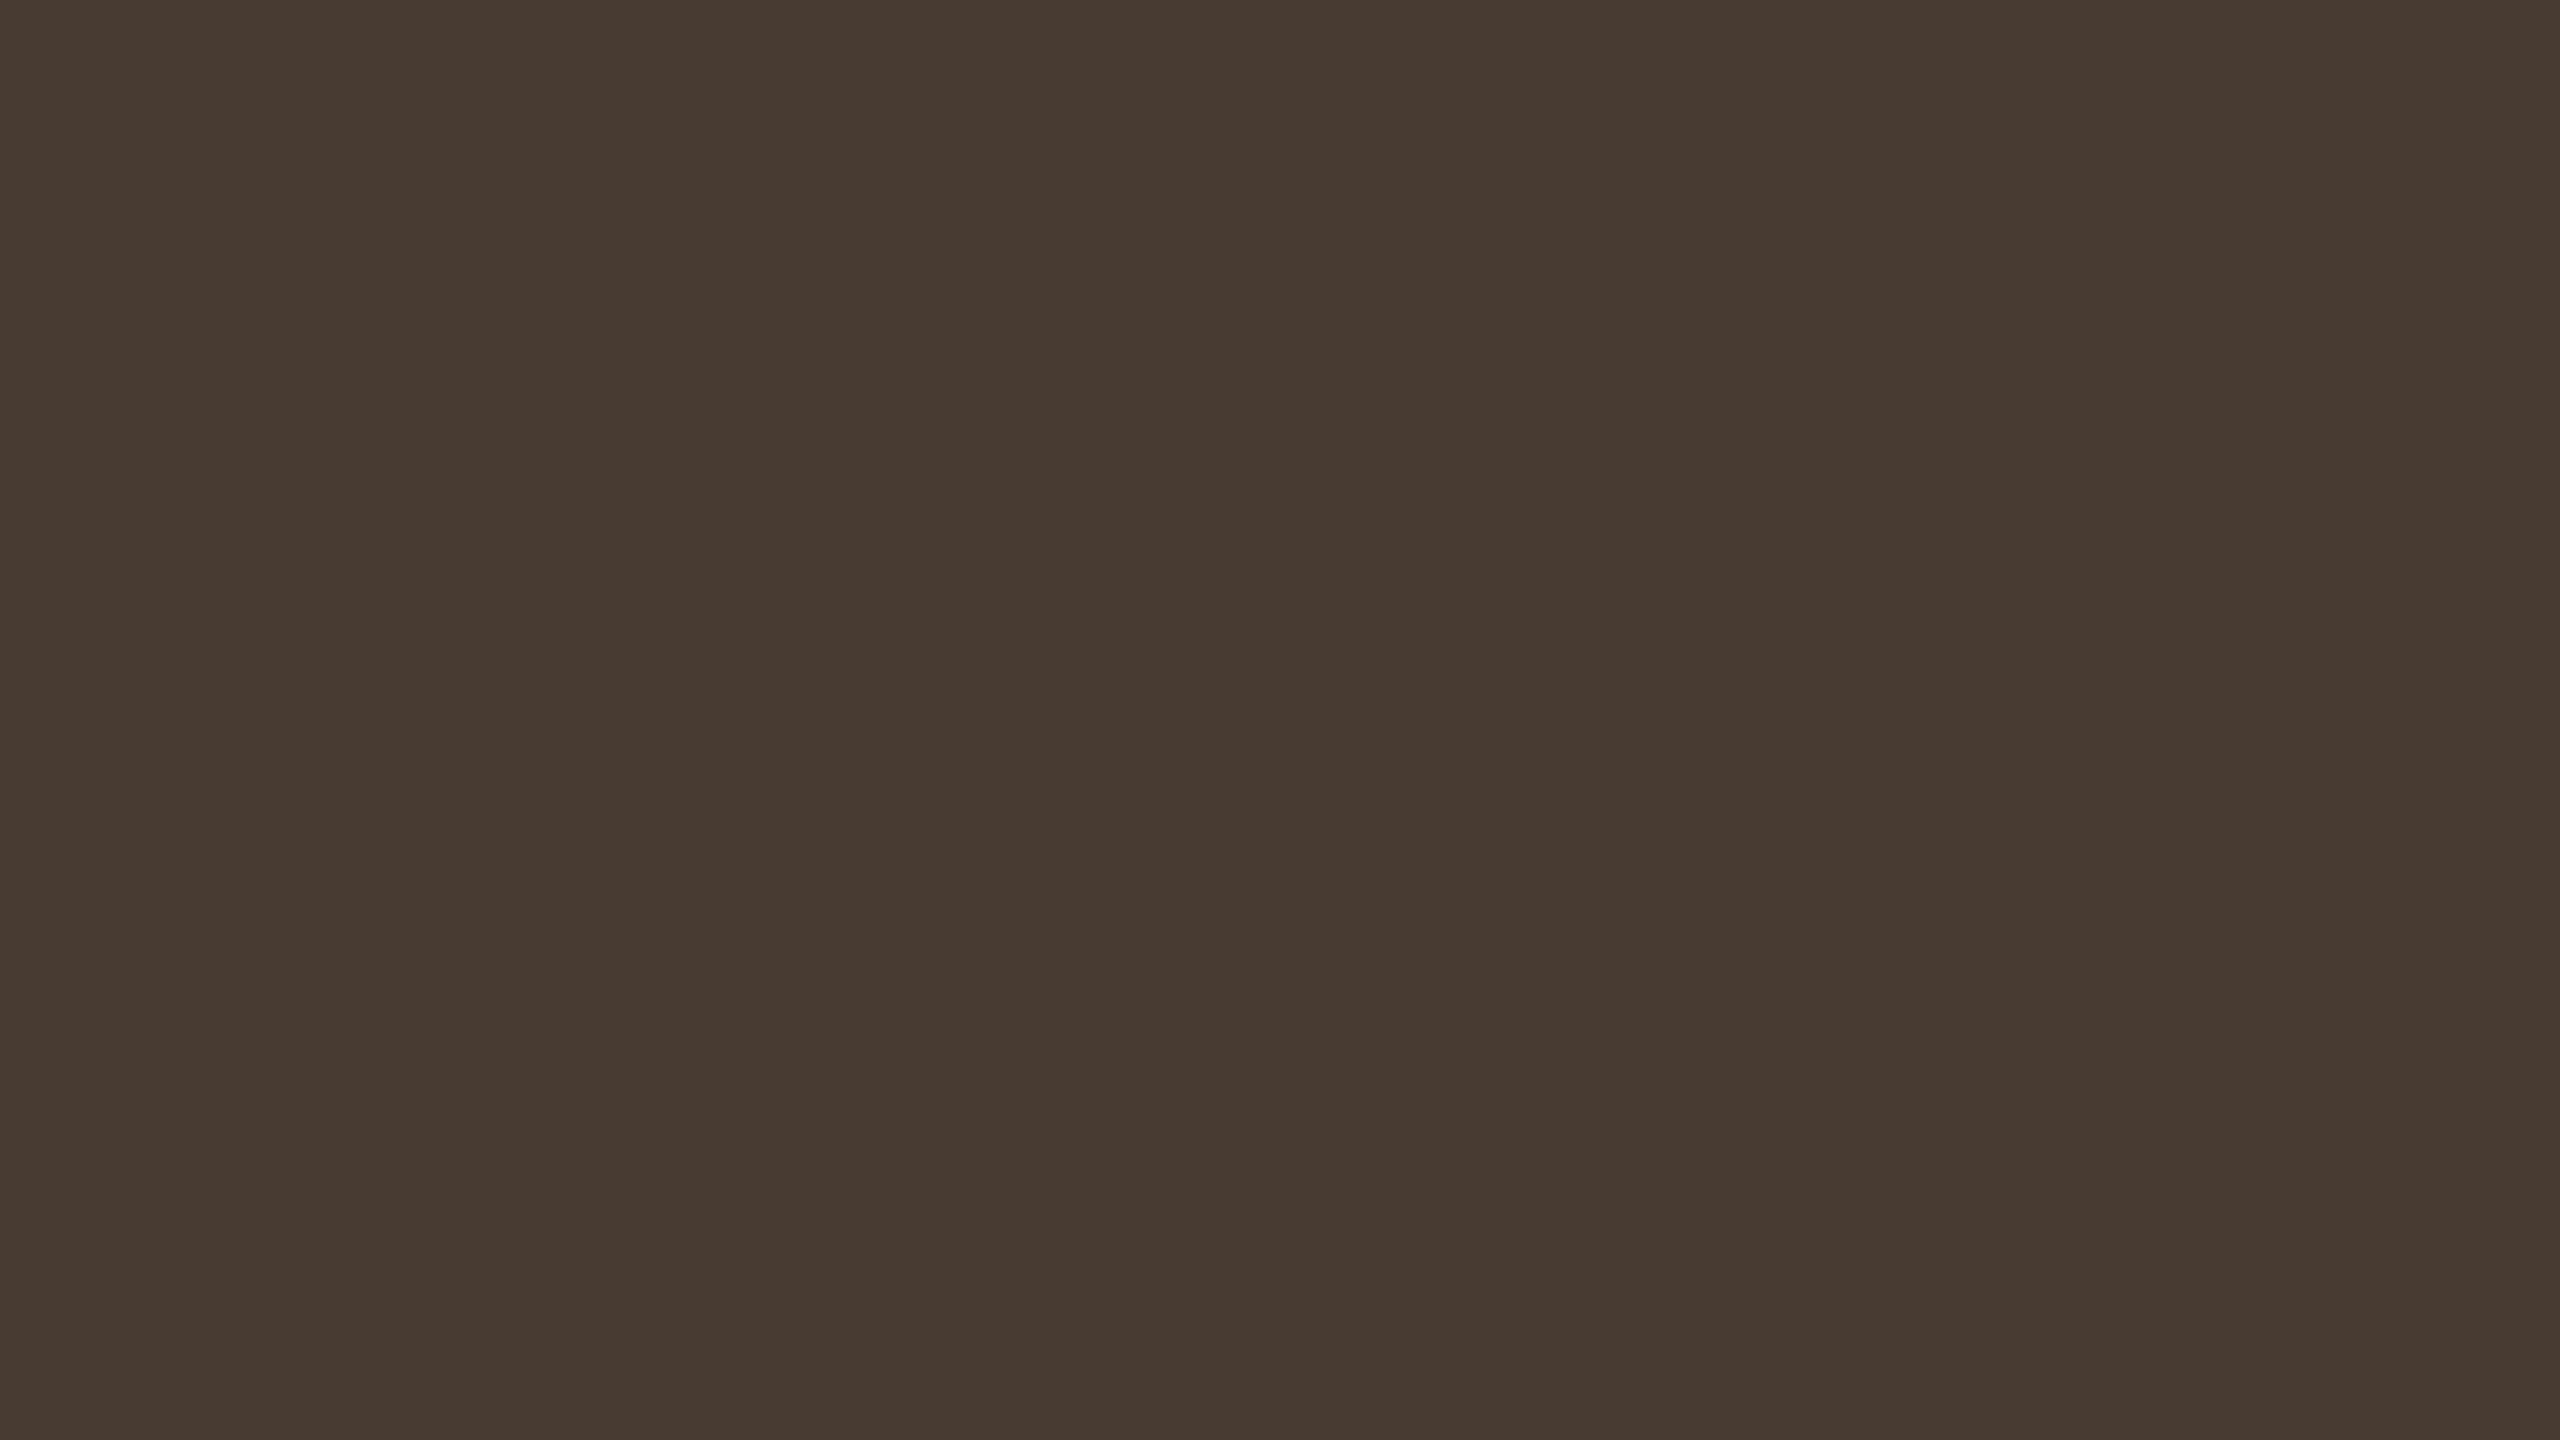 2560x1440 Dark Taupe Solid Color Background